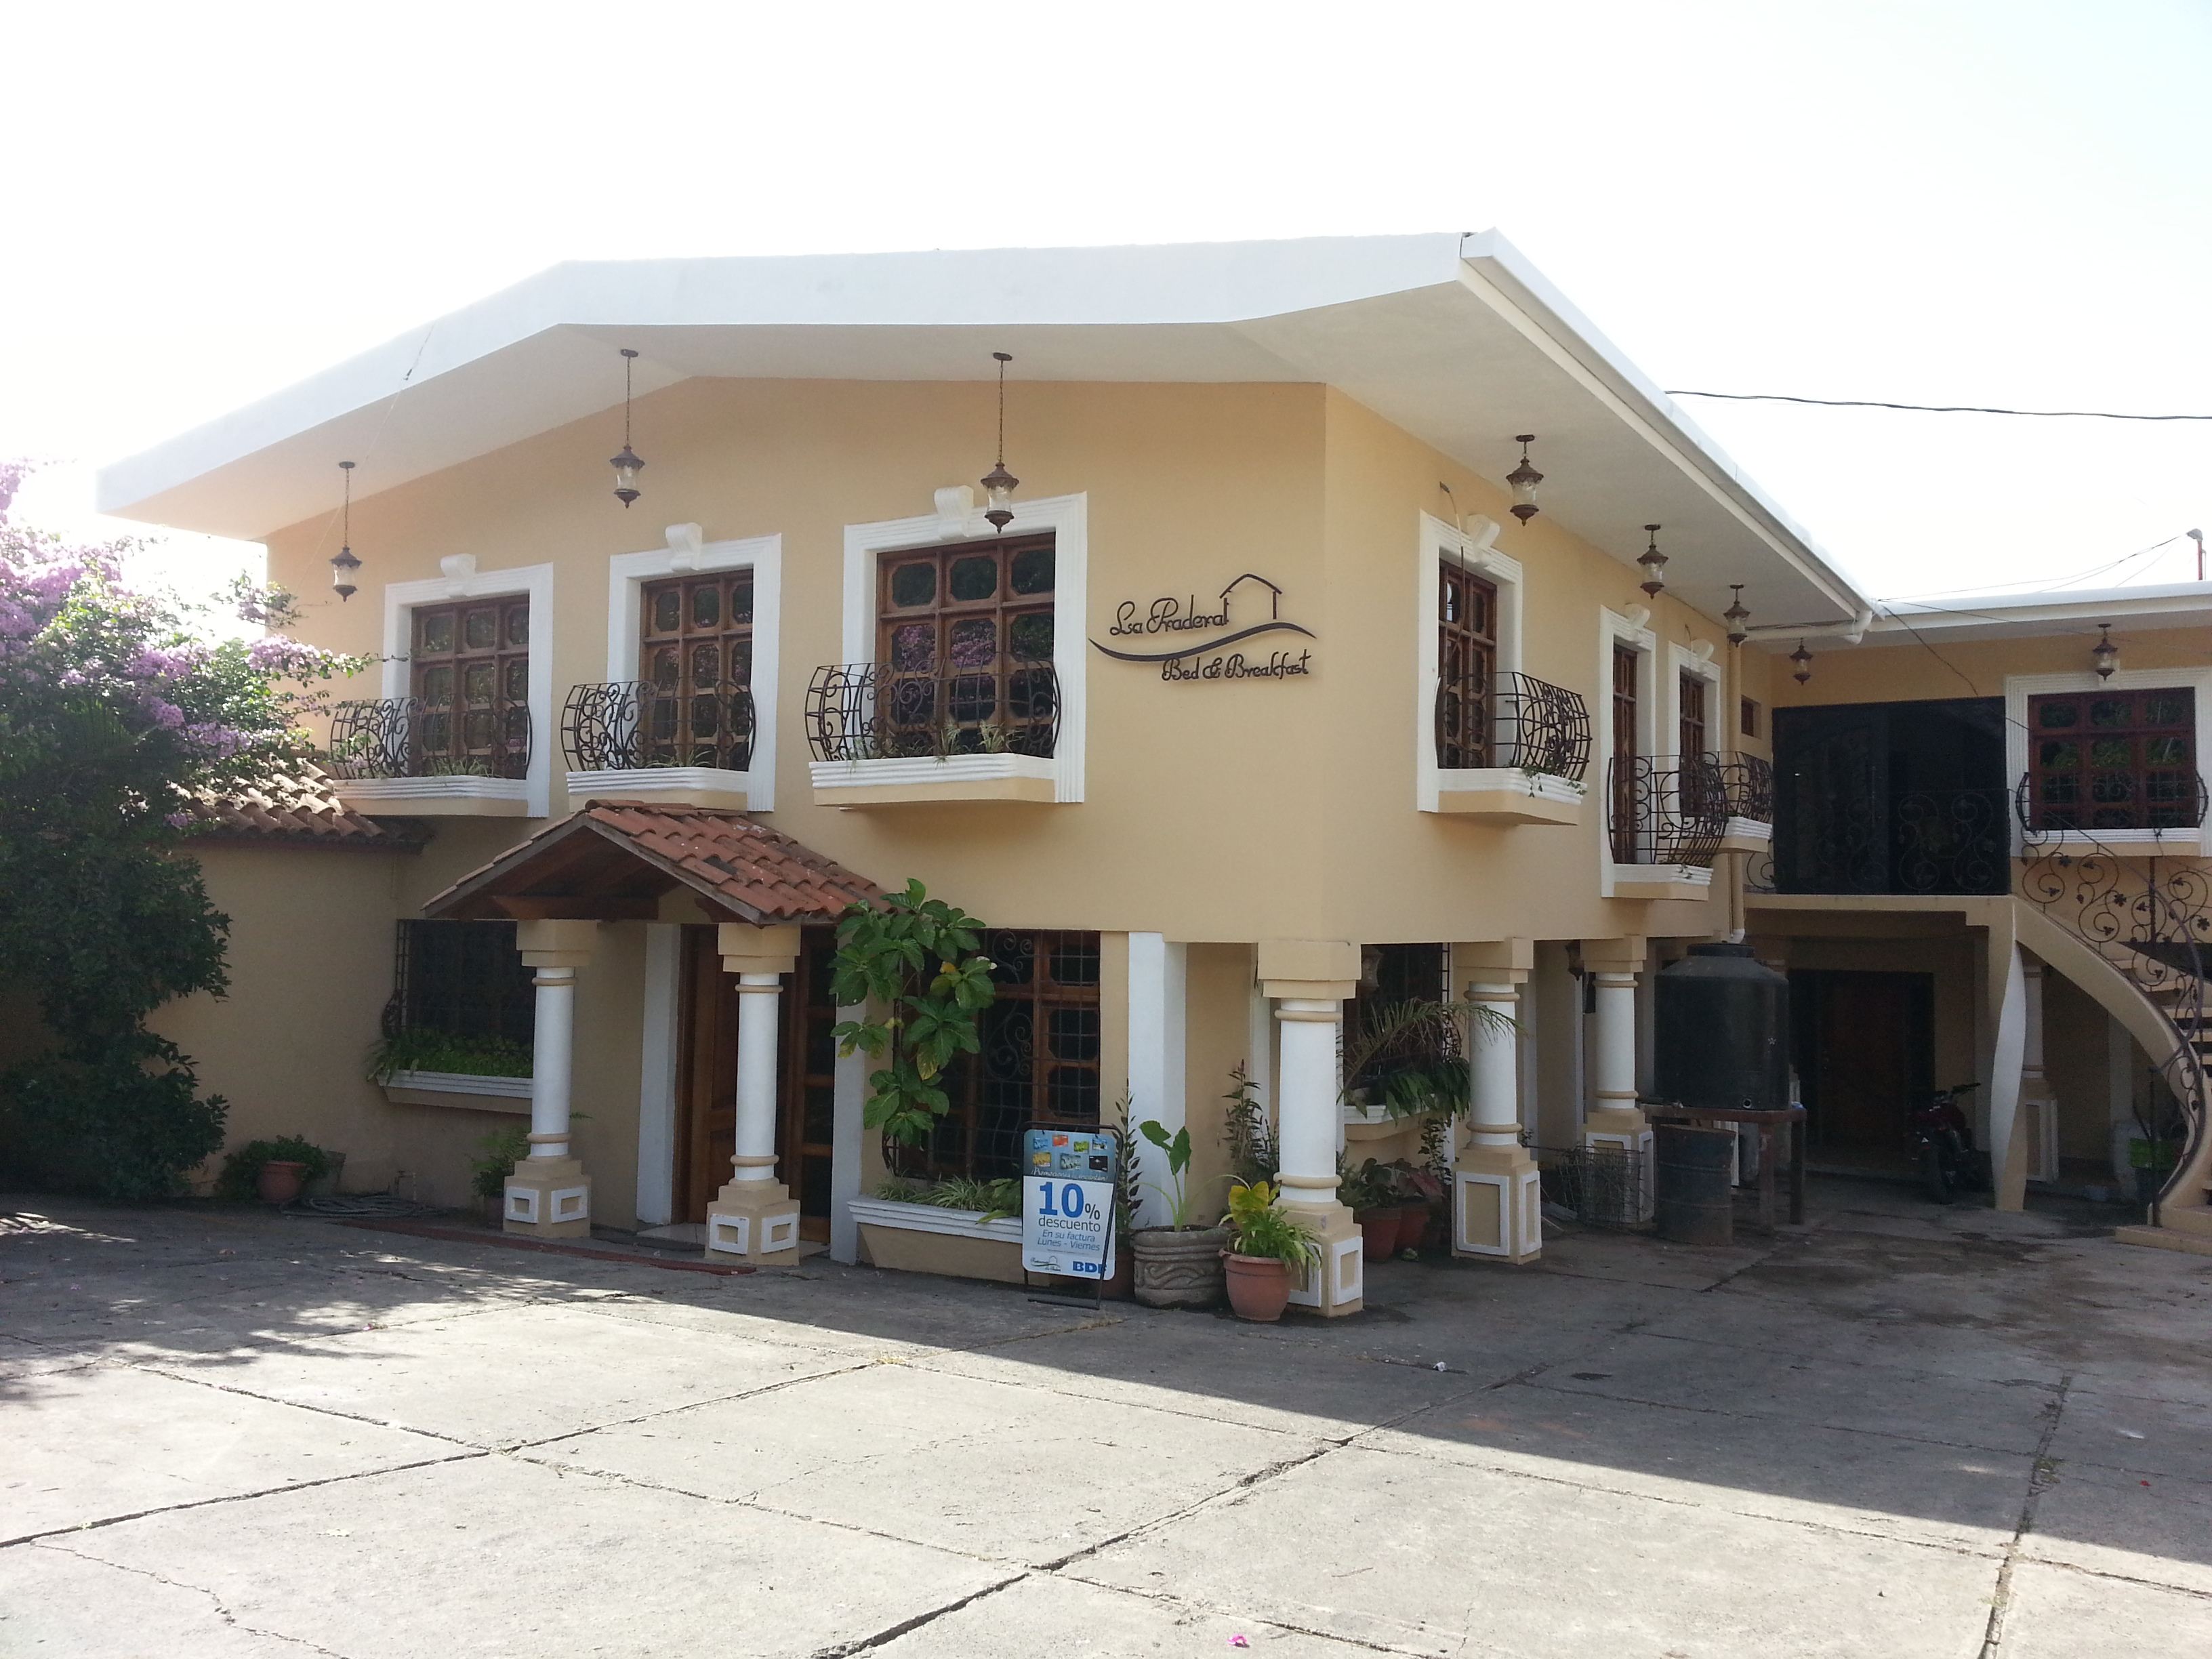 La Pradera Bed and Breakfast